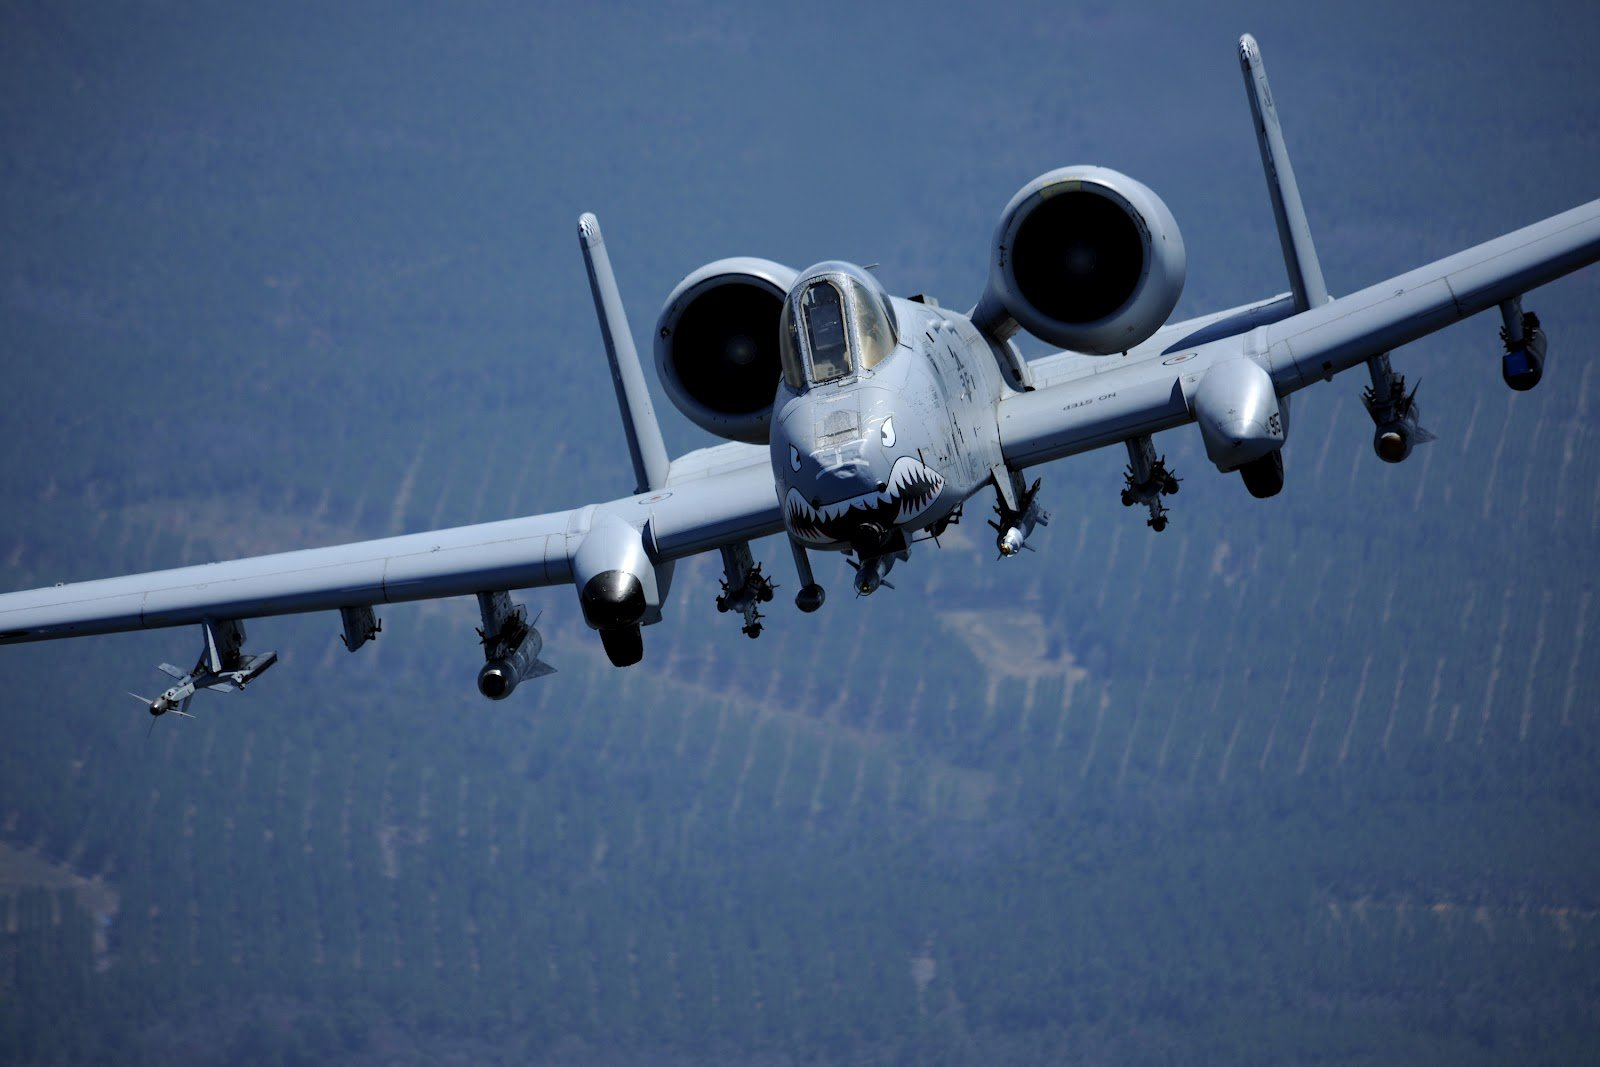 Fairchild Republic A10 Thunderbolt as Warthog Aircraft Wallpaper 2822 1600x1067